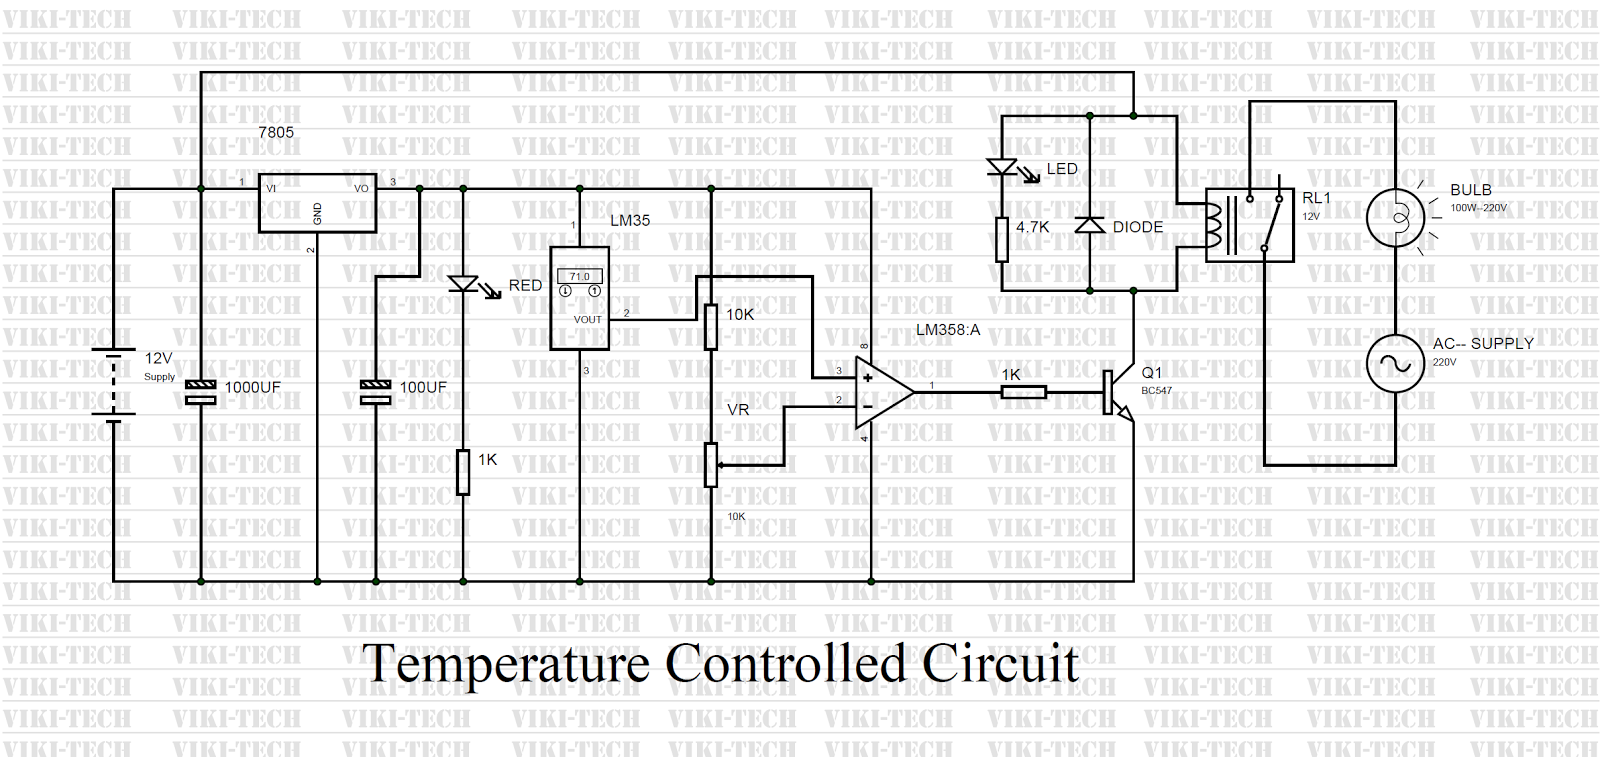 How To Make Temperature Controlled Circuit So The Leds Are Not Over Driven 555 Ic Projects And 4017ic